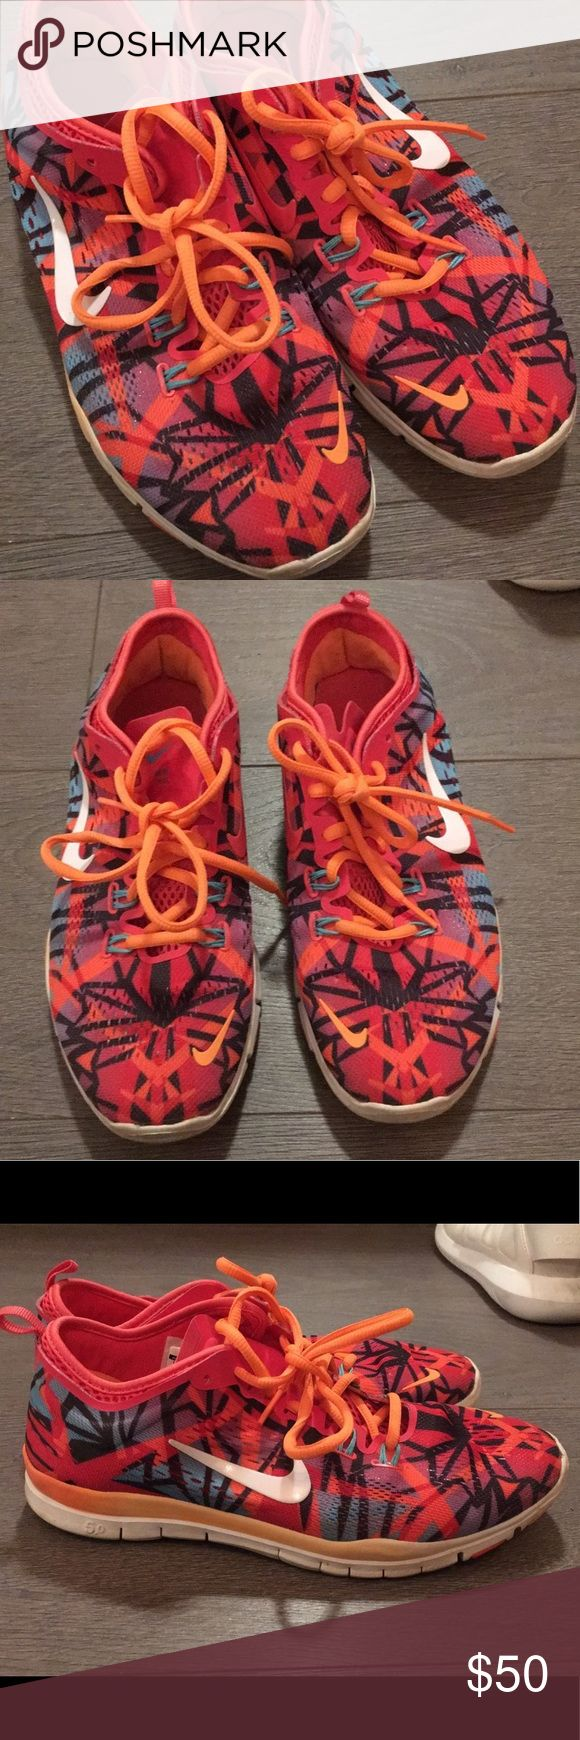 Nike Free Runners Great condition- minimal wear and tear to sole and insole. These are the perfect shoes for someone who likes to have a little fun, and show it! They are bright pink, orange, blue, and purple. Unique in their own right, these shoes are also very light and comfortable. Please note that ship times may vary as i am currently out of the country. Nike Shoes Athletic Shoes